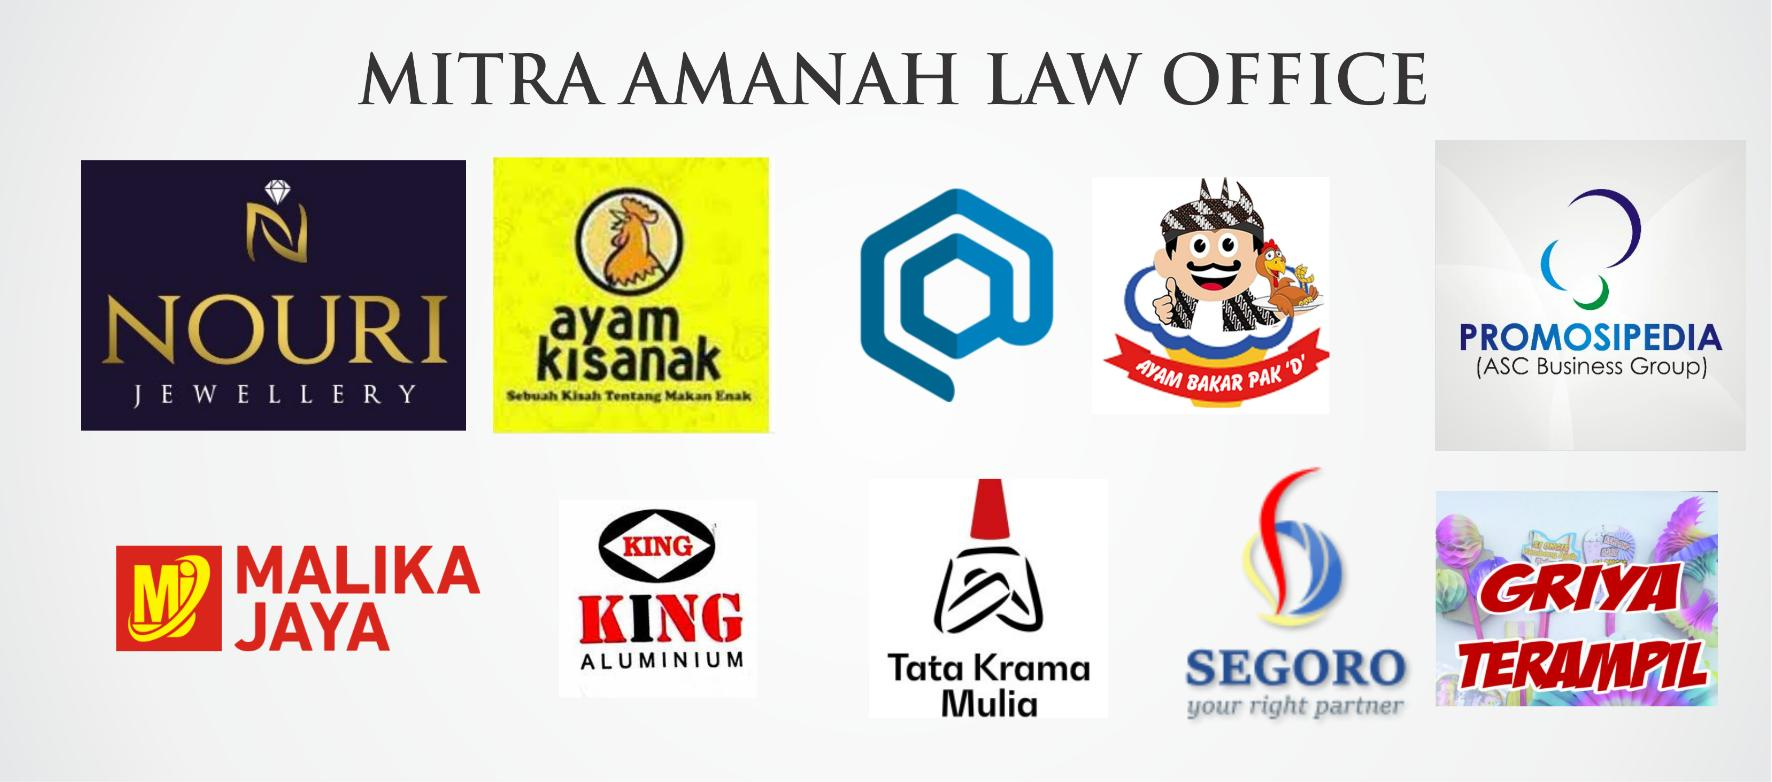 mitra amanah law office